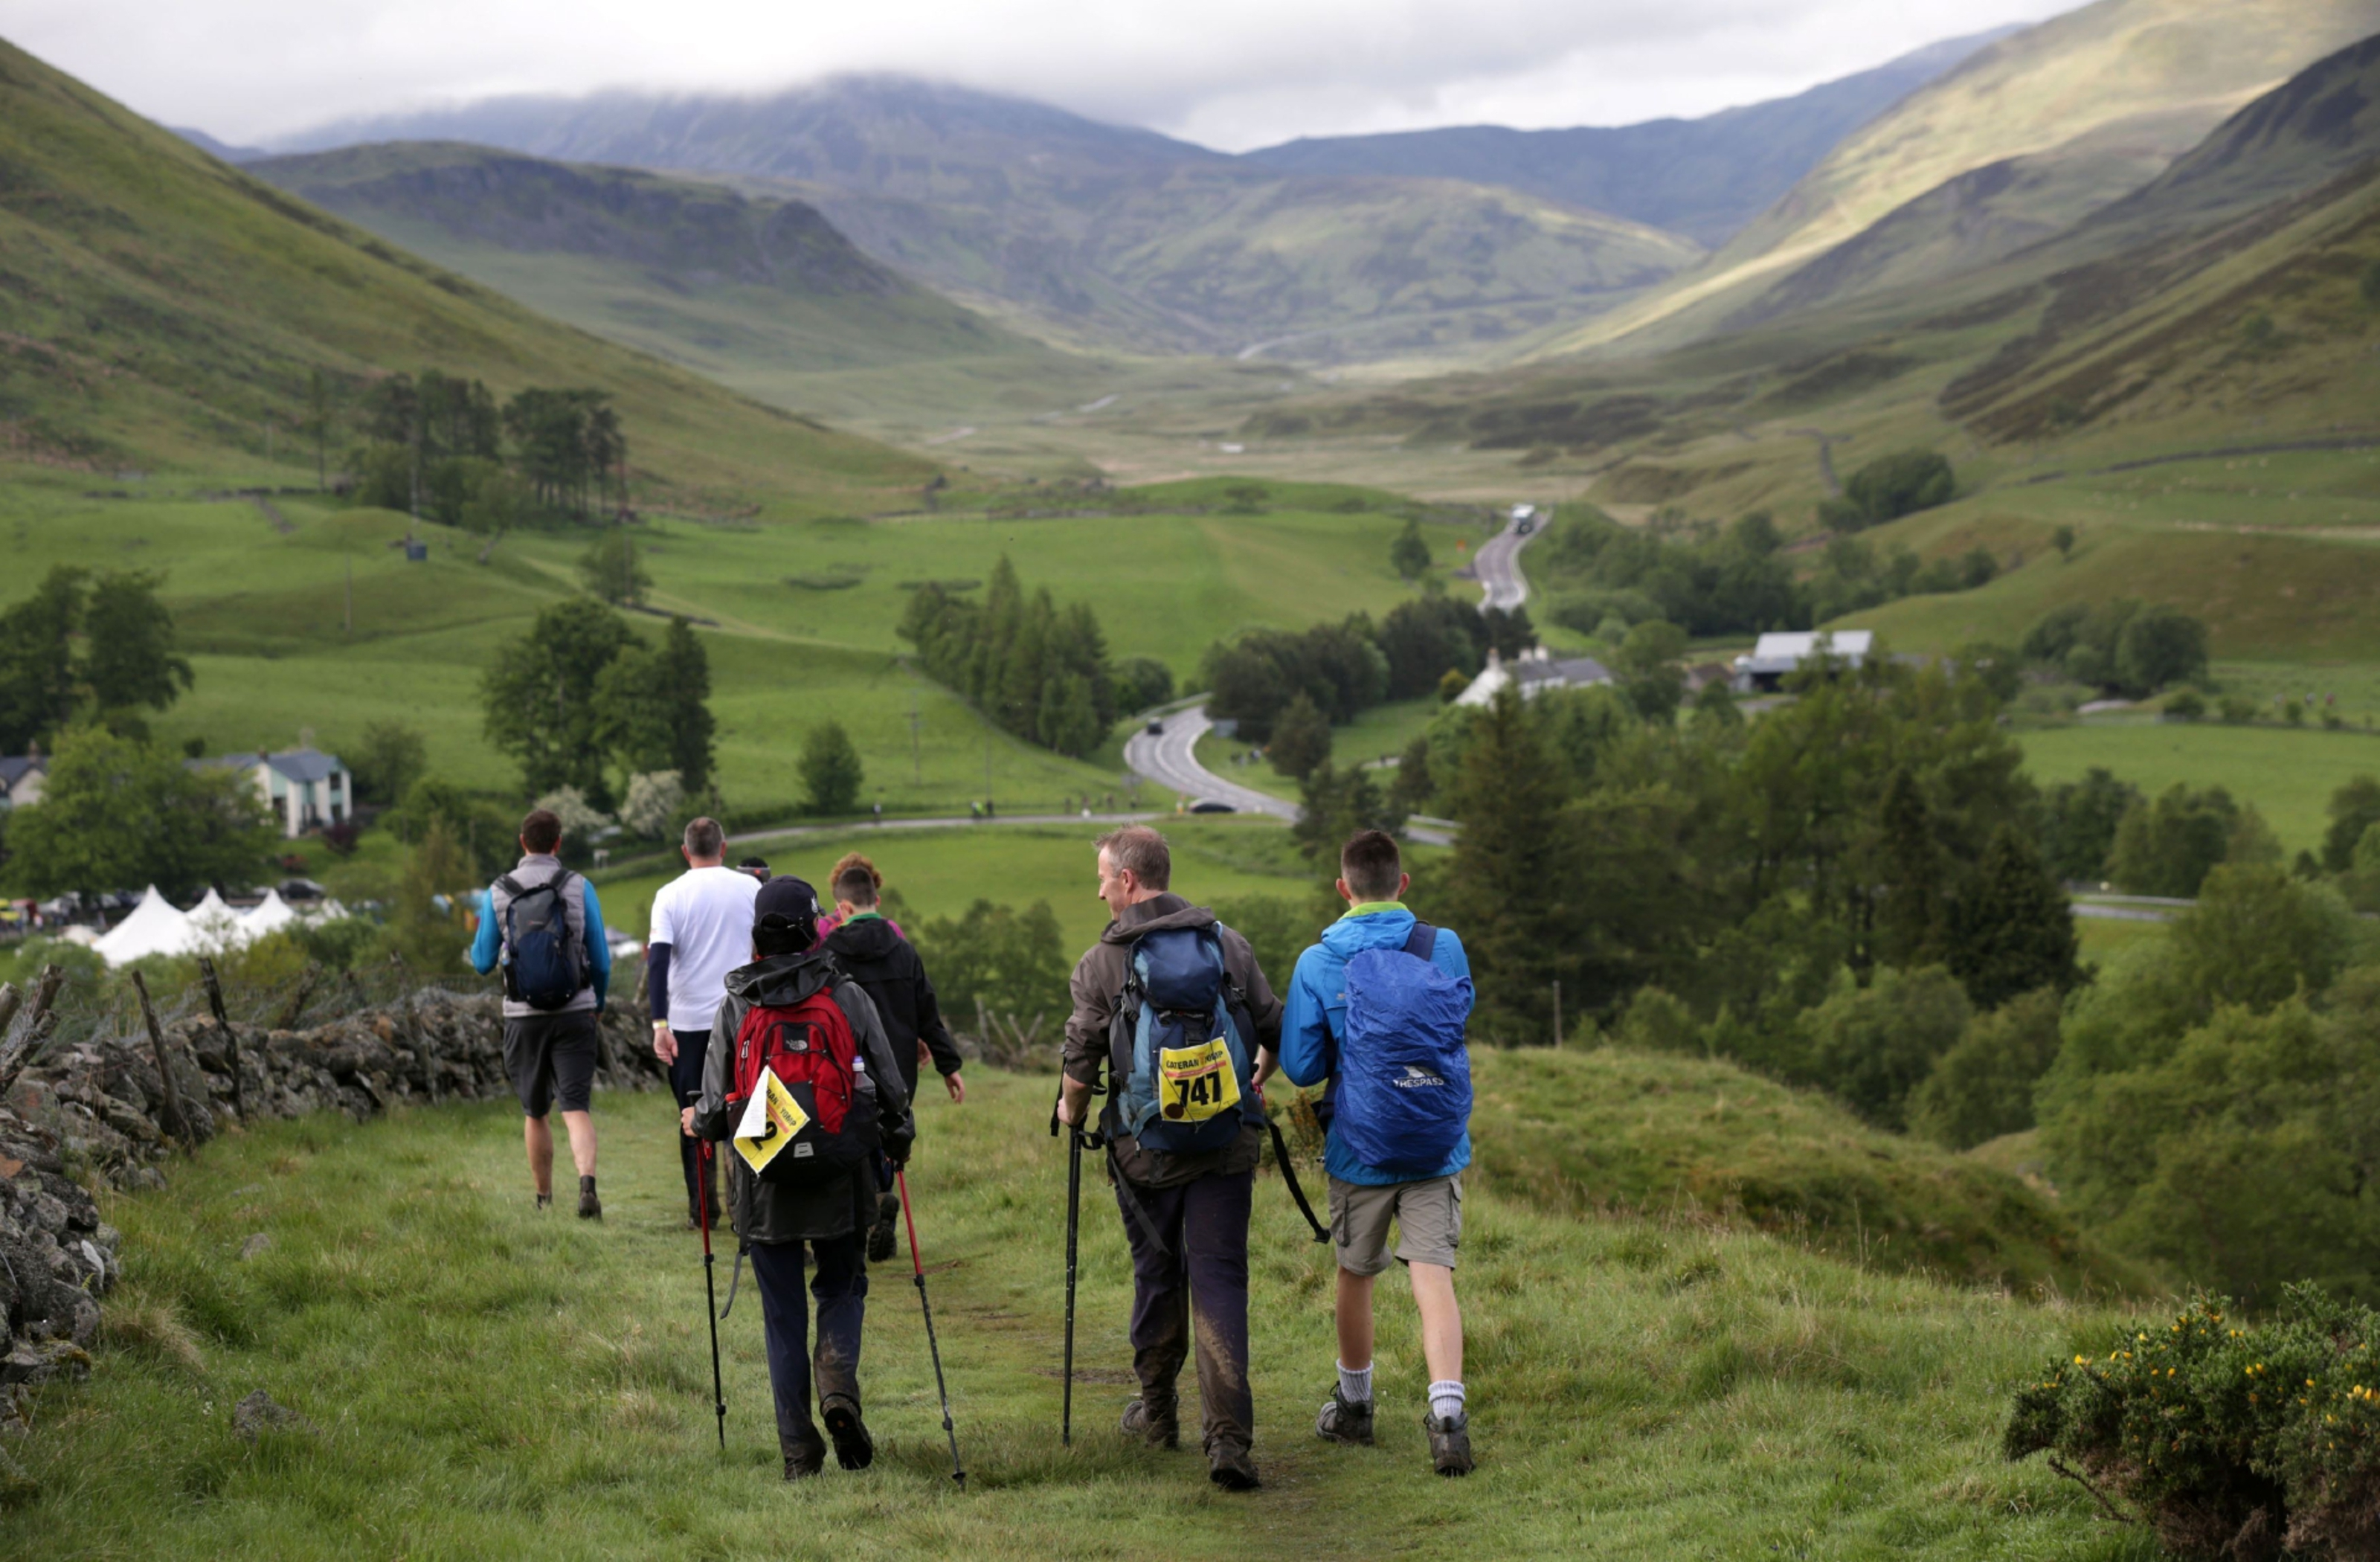 Walkers on the Cateran Trail.